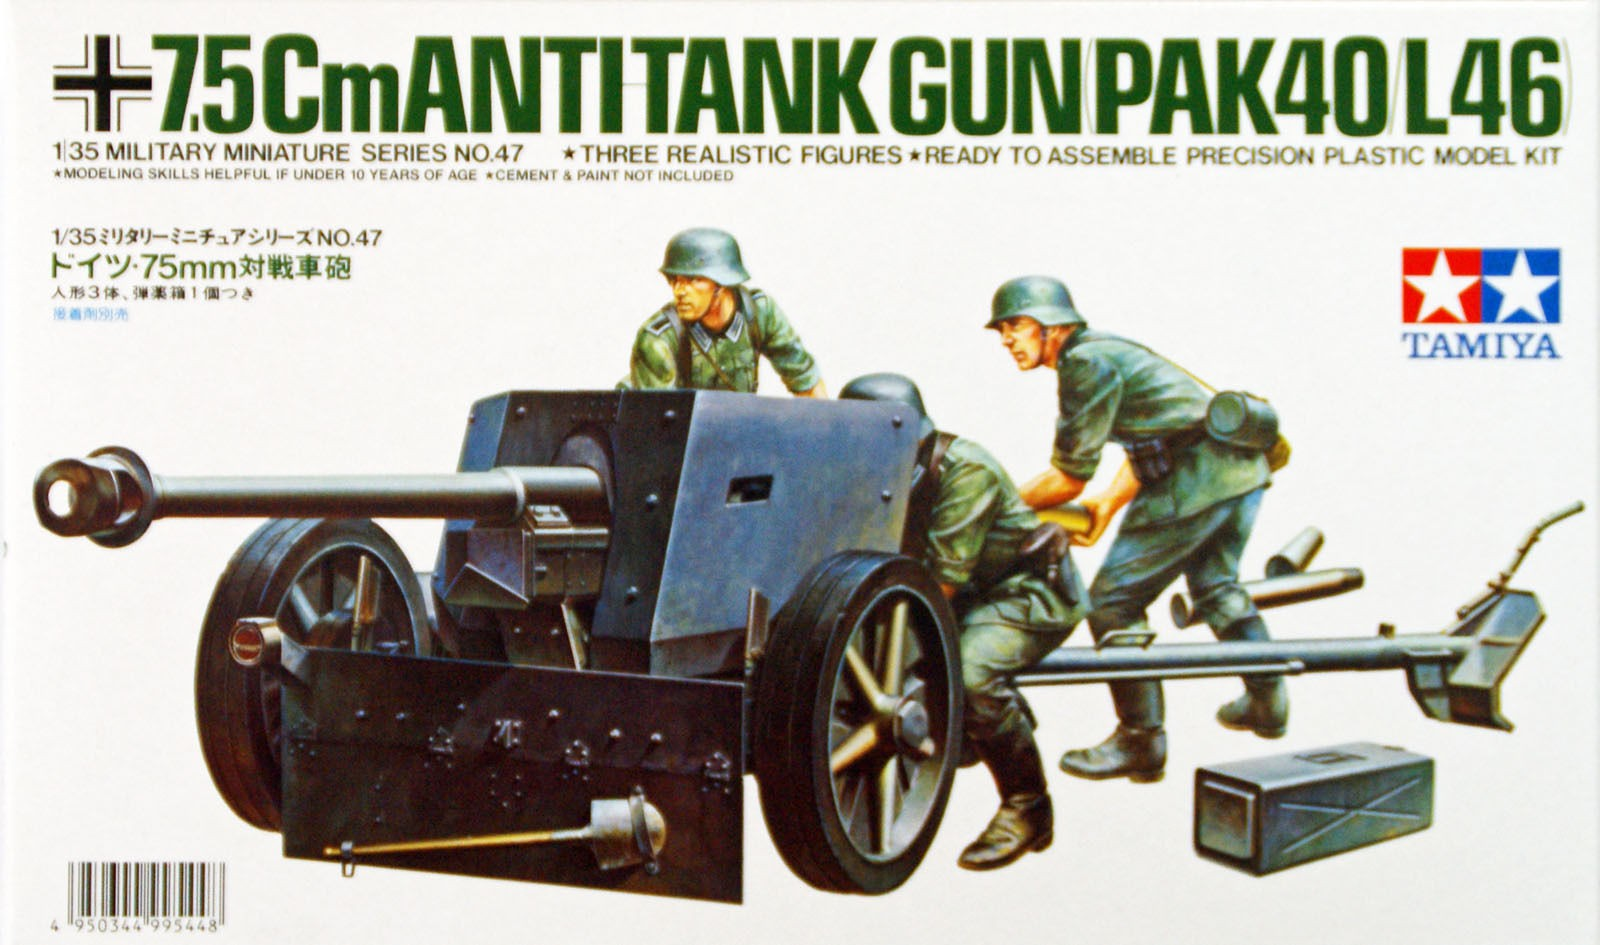 German 75mm Anti Tank Gun Kit - Tamiya 35047- plastic model kit - 1/35 scale